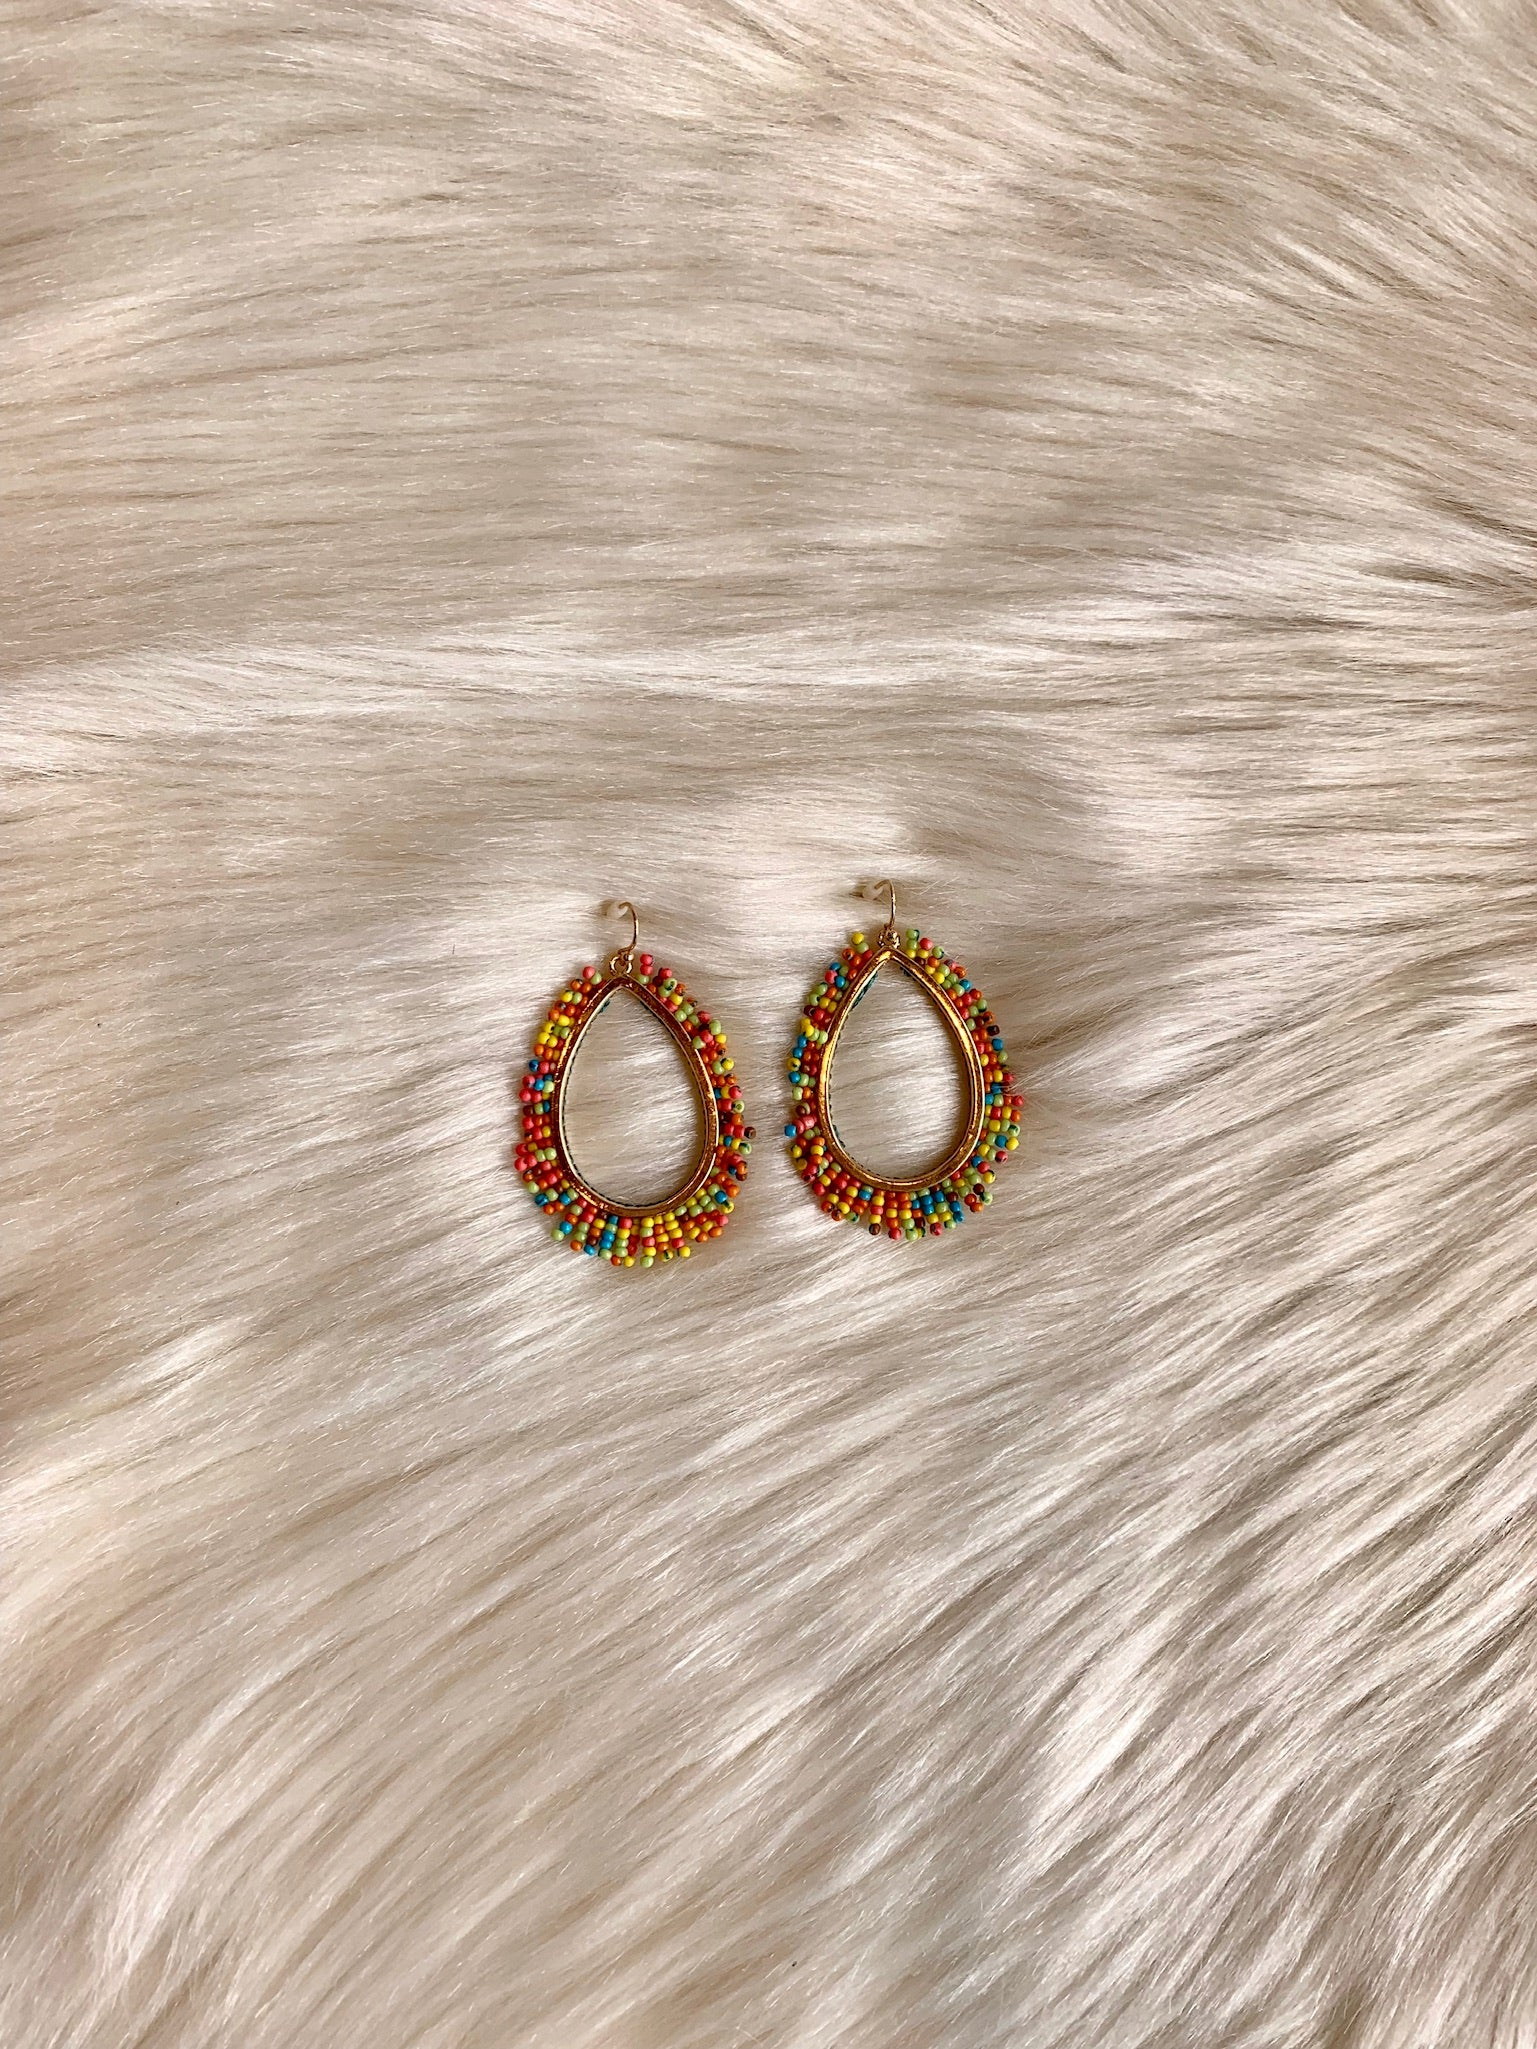 Festive Feelings Multi Colored Bead Earrings